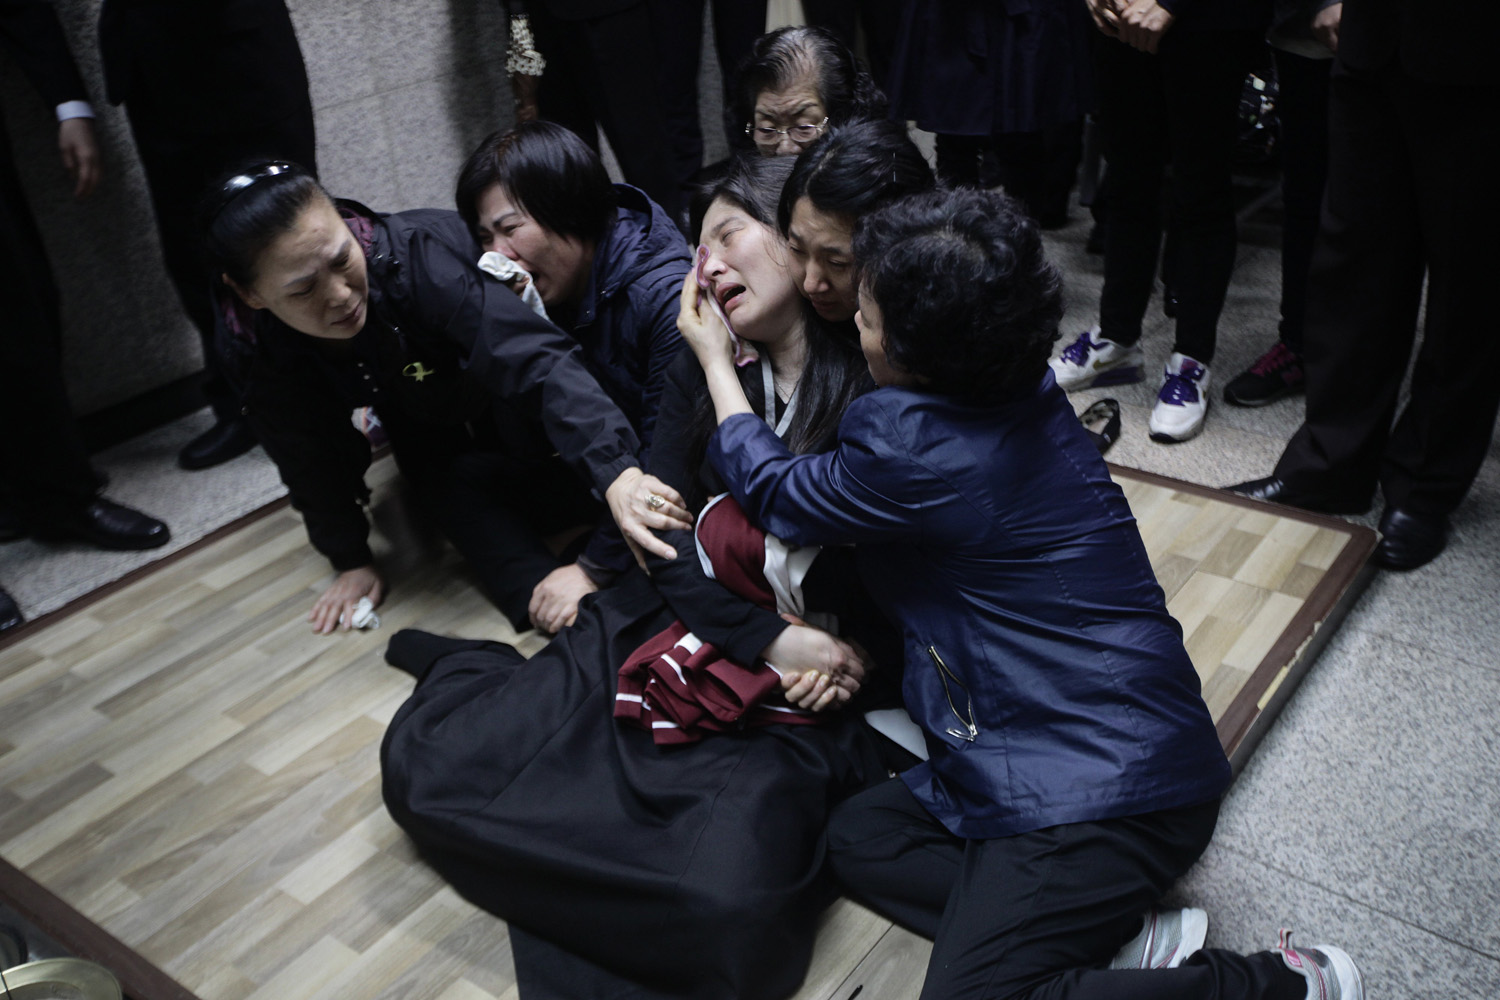 April 27, 2014. Eom Ji-young, center, mother of Park Yae-ji, a 16-year-old victim of the sunken Sewol ferry accident, collapses in grief as her daughter's remains enter the kiln at a crematorium in Suwon, South Korea,